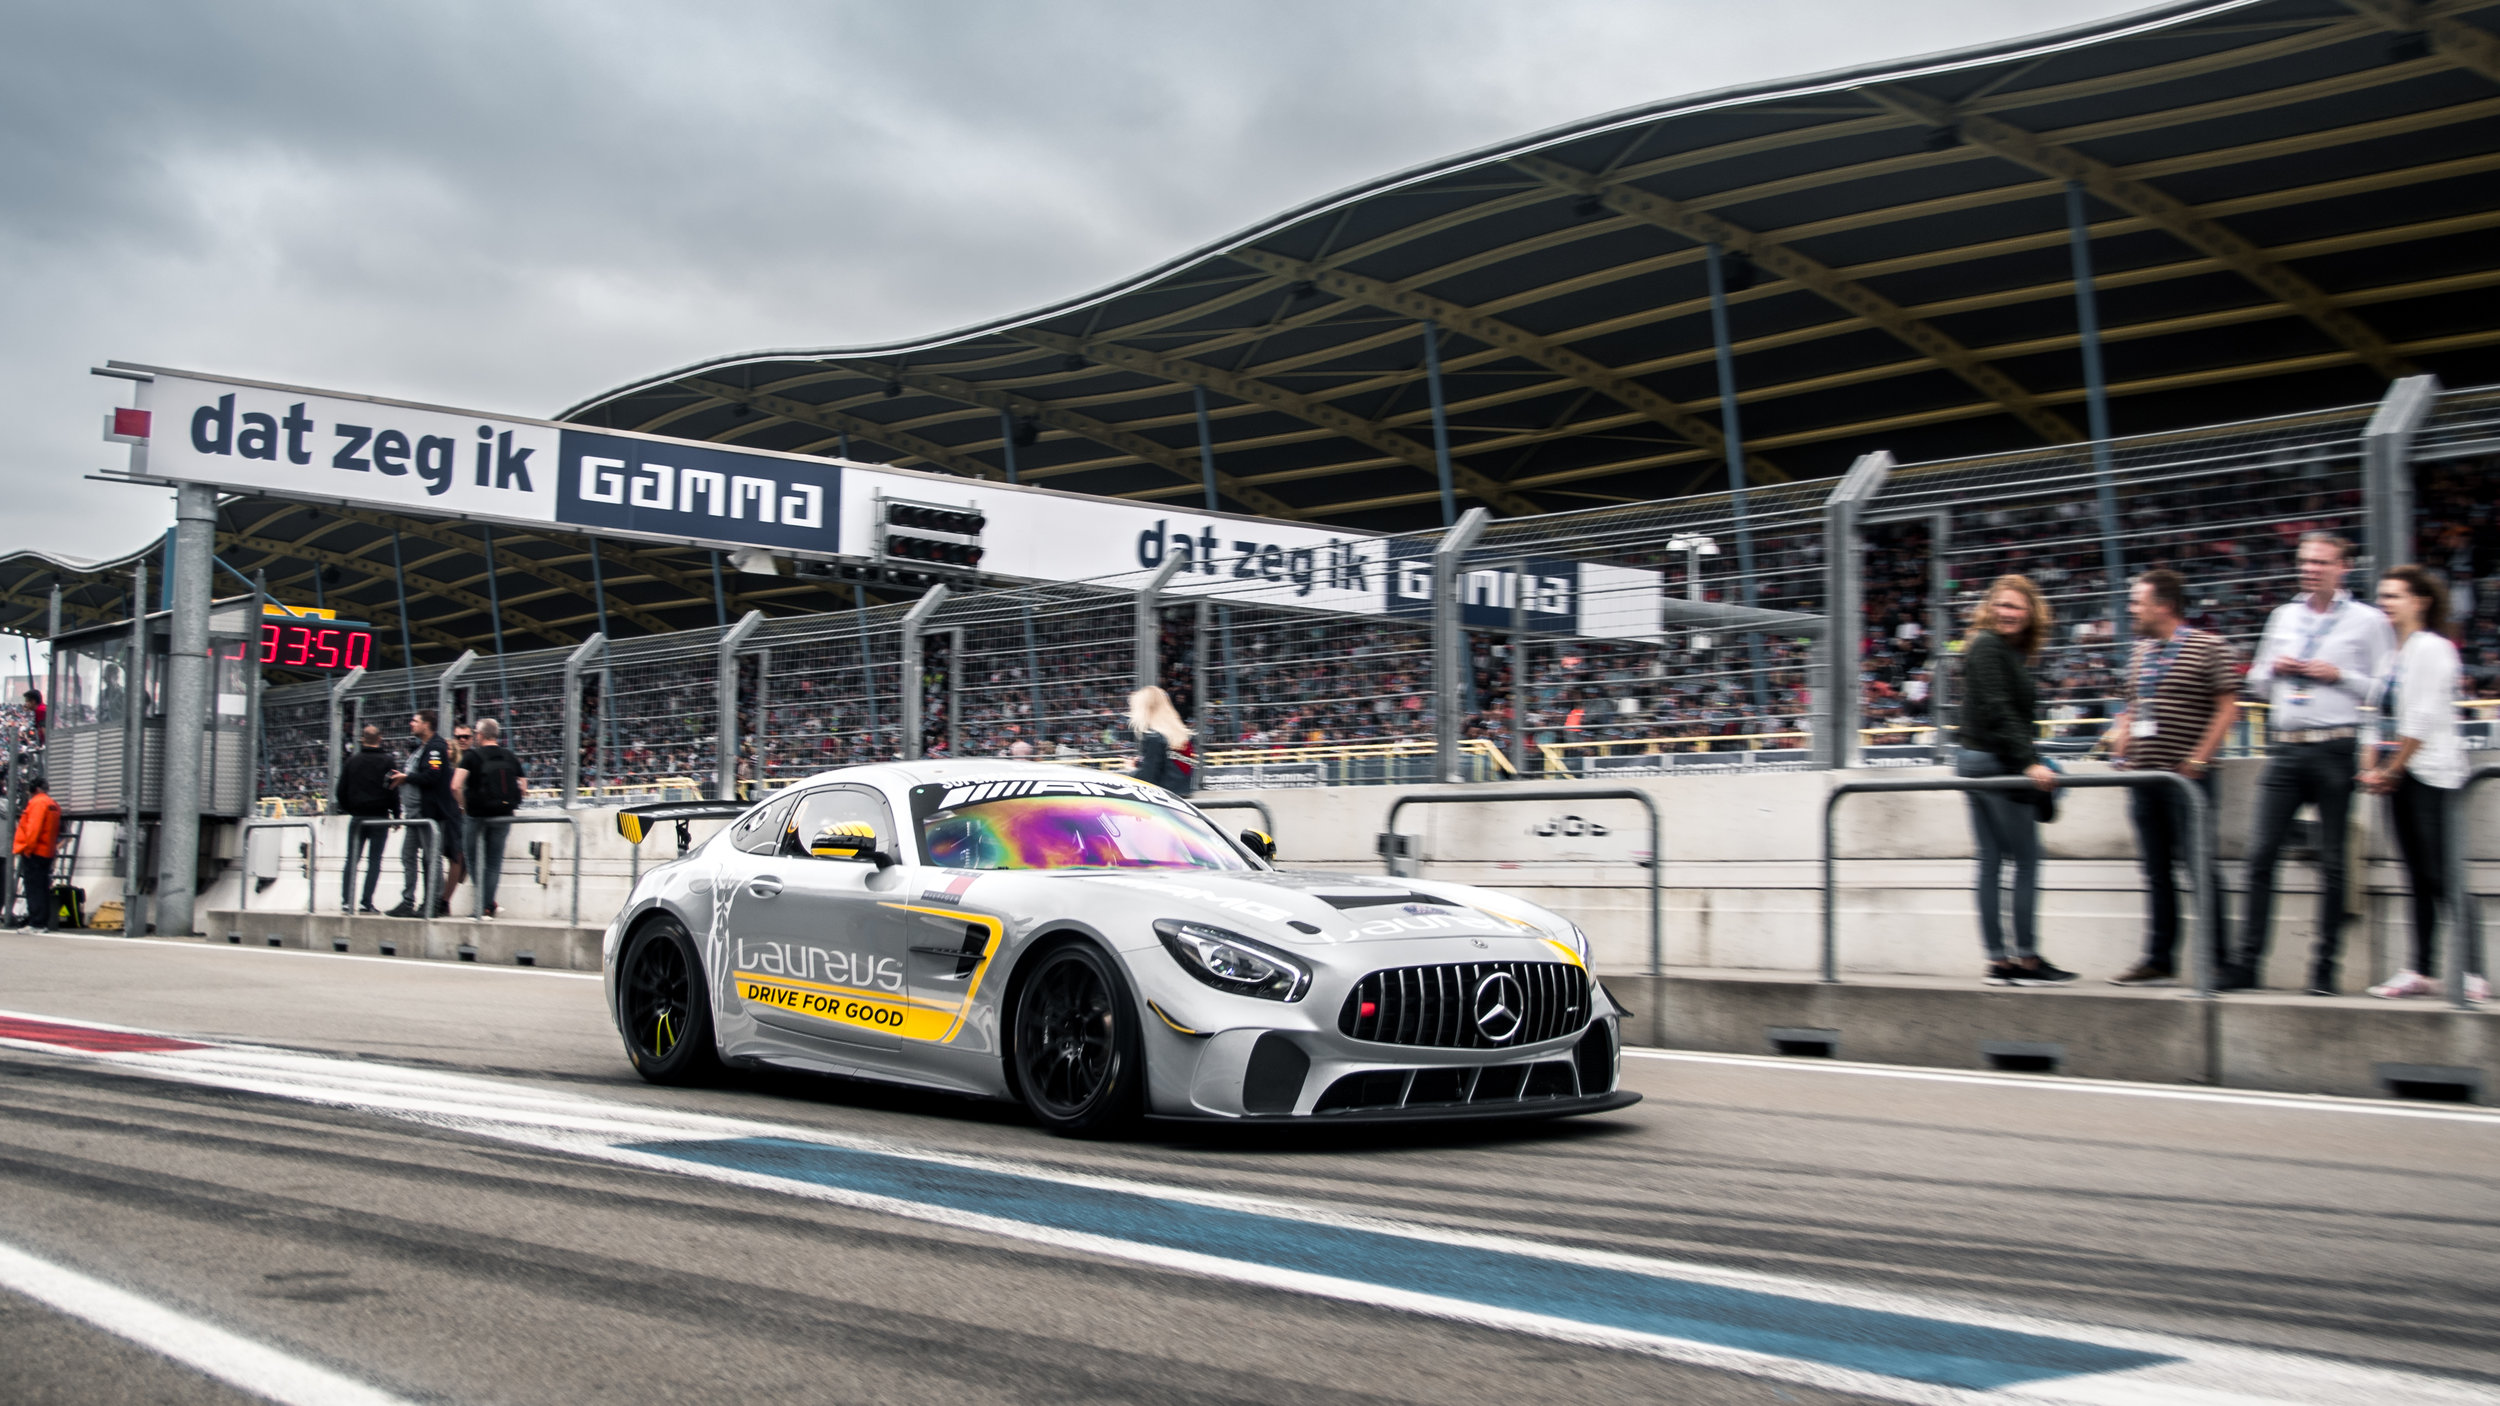 Gamma racing days  - 17 august 2018We will be present  with our race car - AMG GT4 - and other Supercars. Professional drivers will take you  for some hot-laps around Assen Circuit! More info click here!